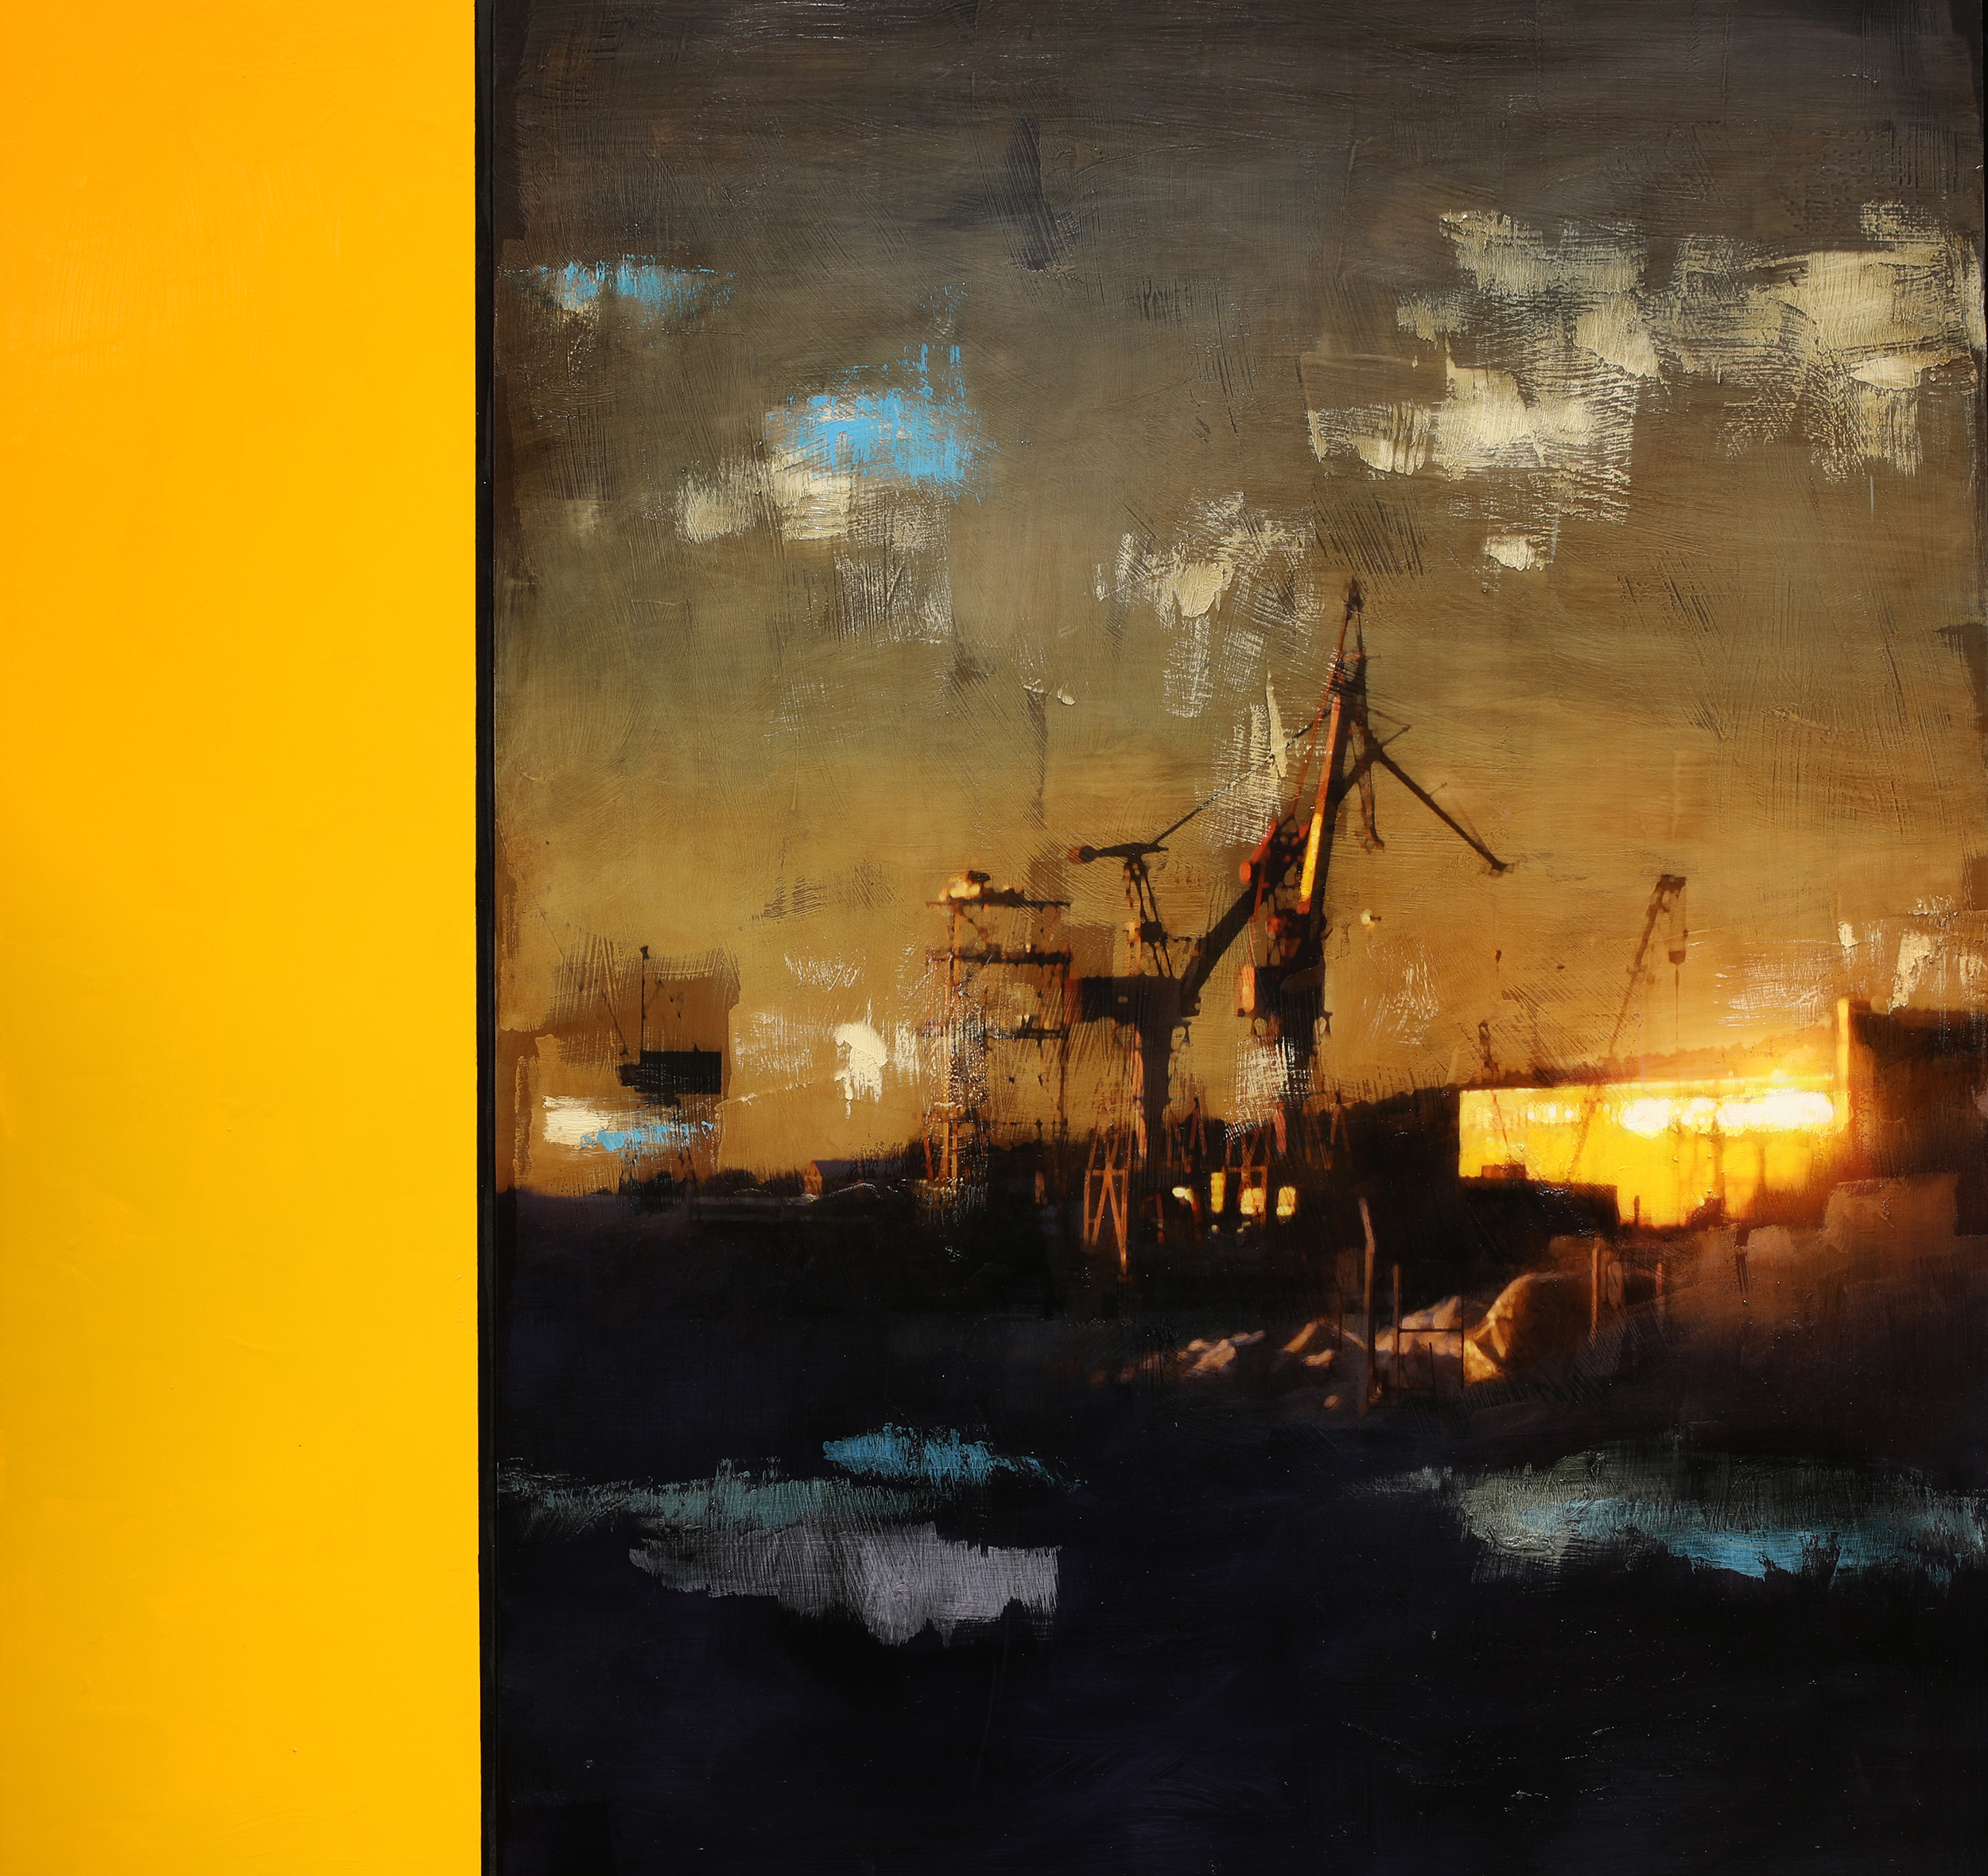 Idle Wharf / January Zenit ( Archipelago)  Mixed Media / Oil on MDF 125 x 120 cm / 49 x 47 in Ver I.: Private Collection / Norway 2017